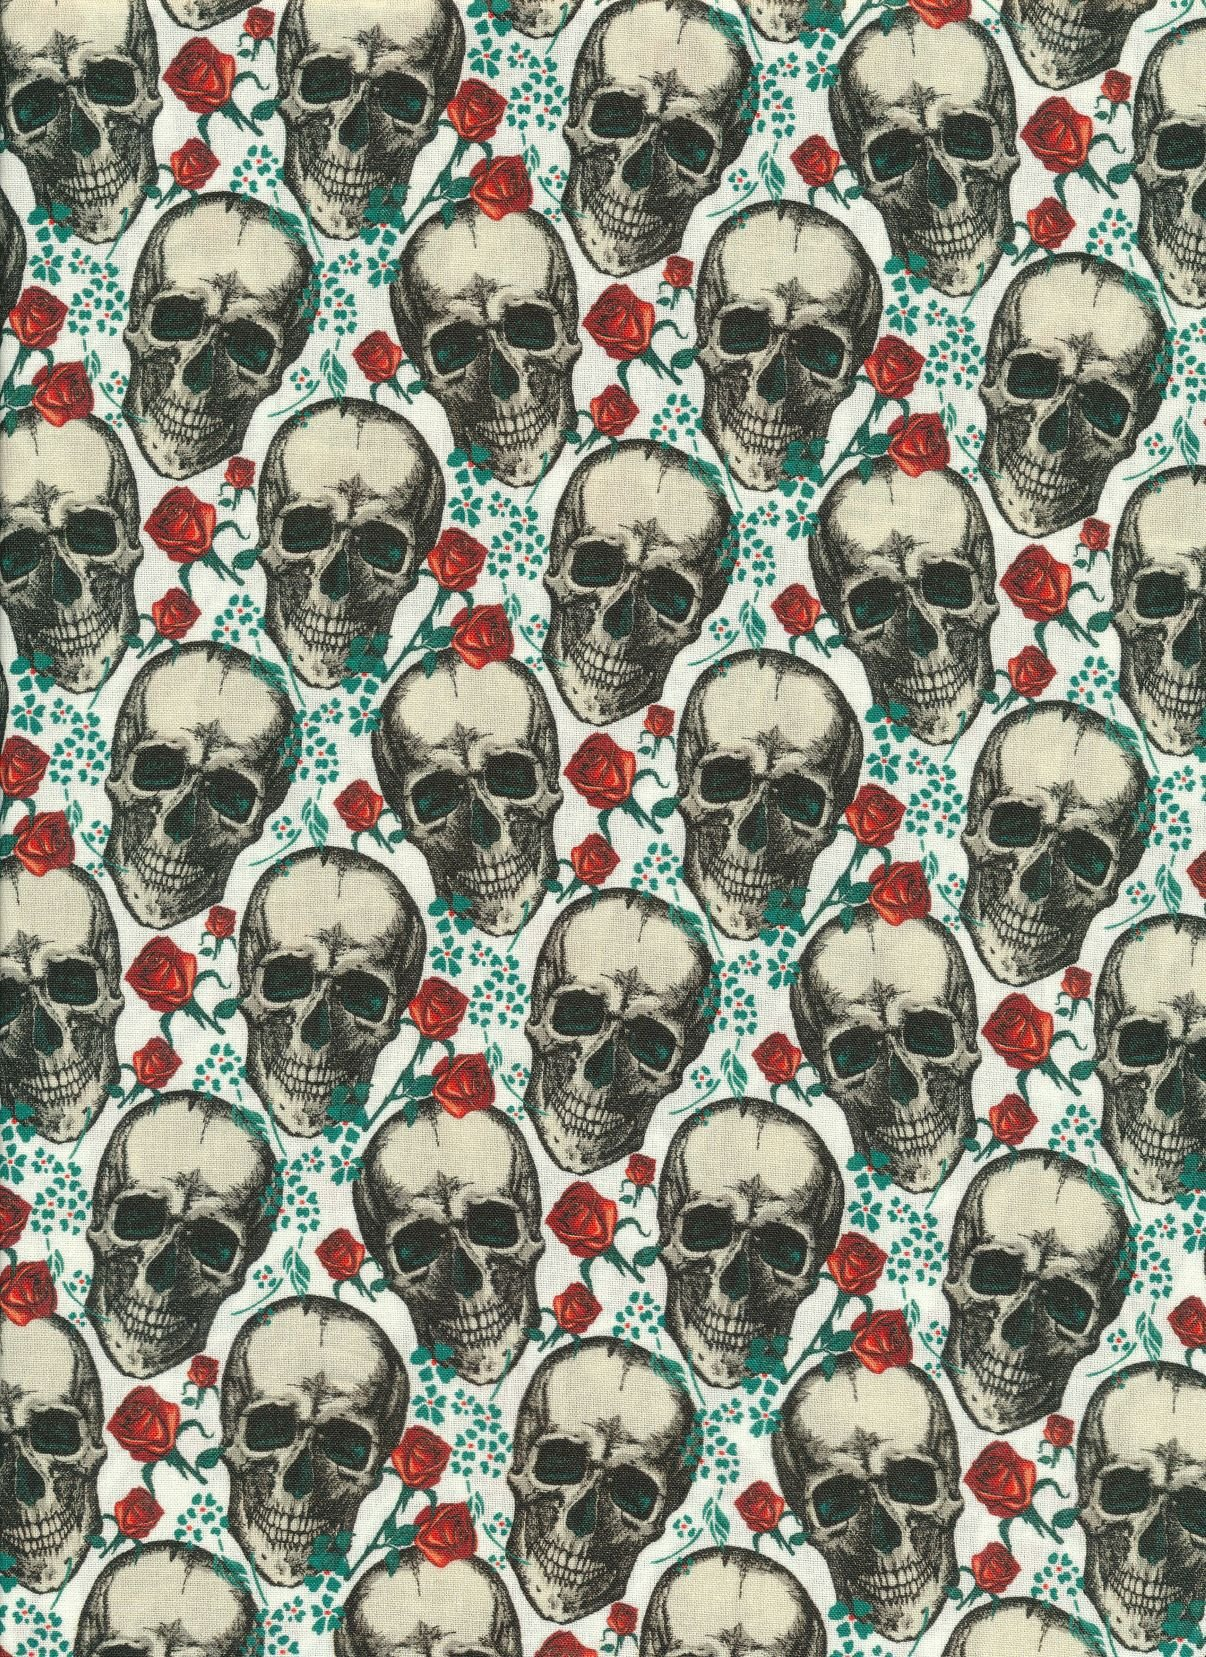 Scull Rose (1)